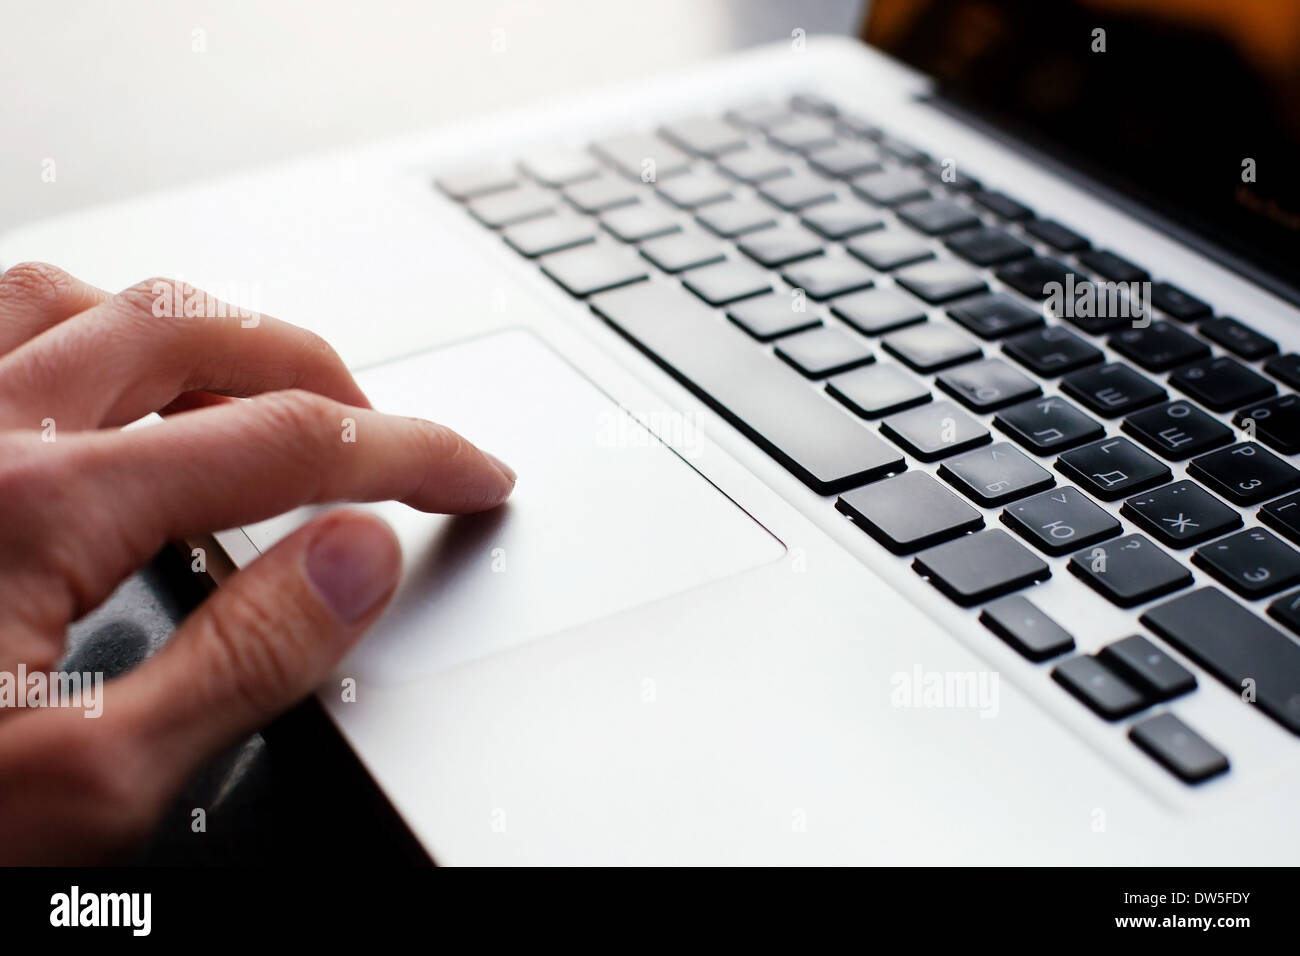 using computer - Stock Image